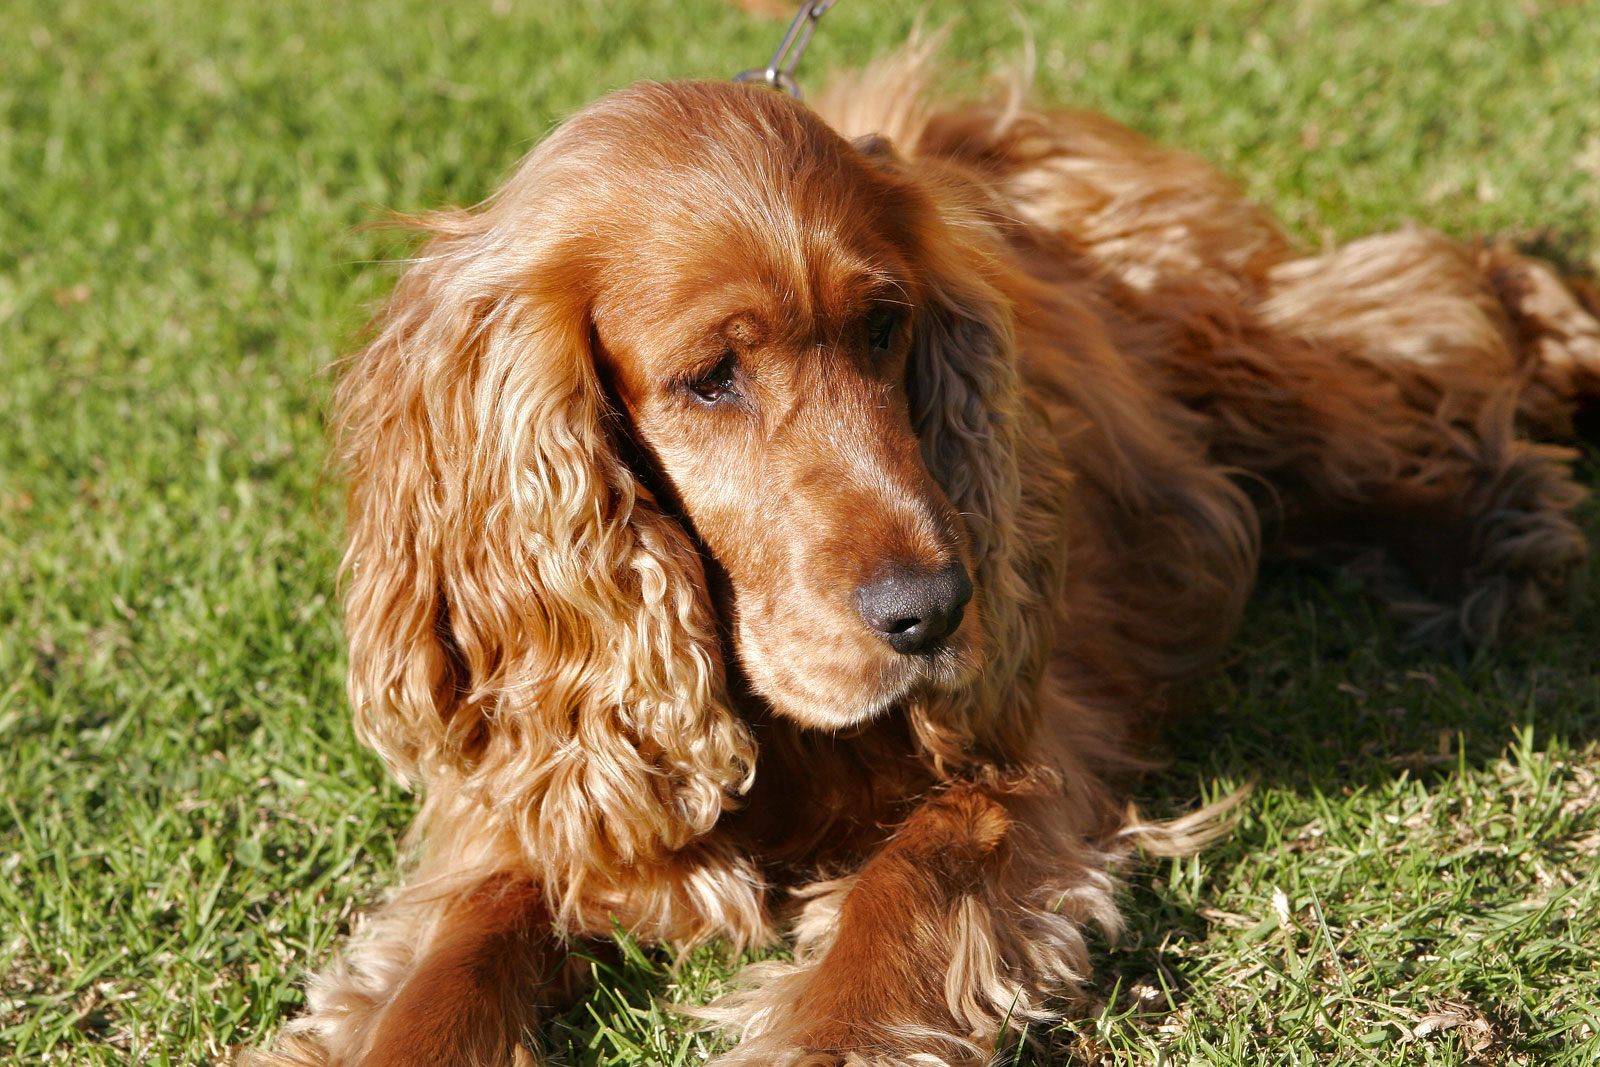 File:Mix breed dog.jpg - Wikimedia Commons